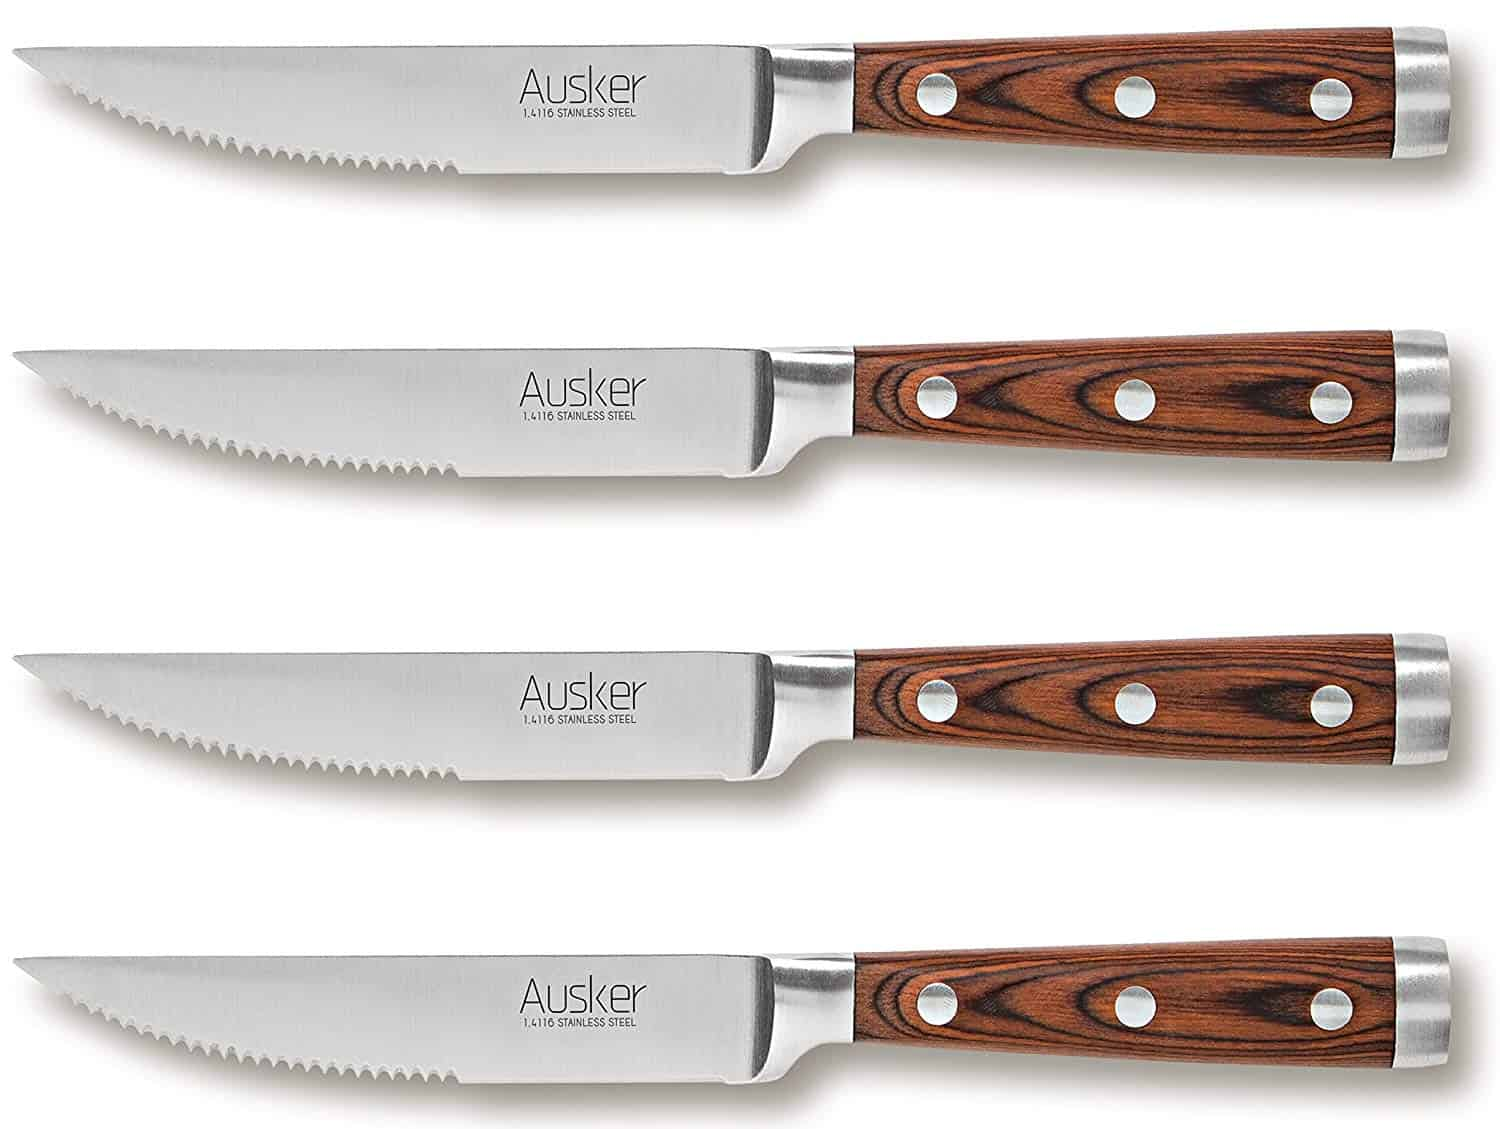 Stainless steel Ausker steak knife set with highly resistant and durable Pakkawood handle, good for pizza or steak.